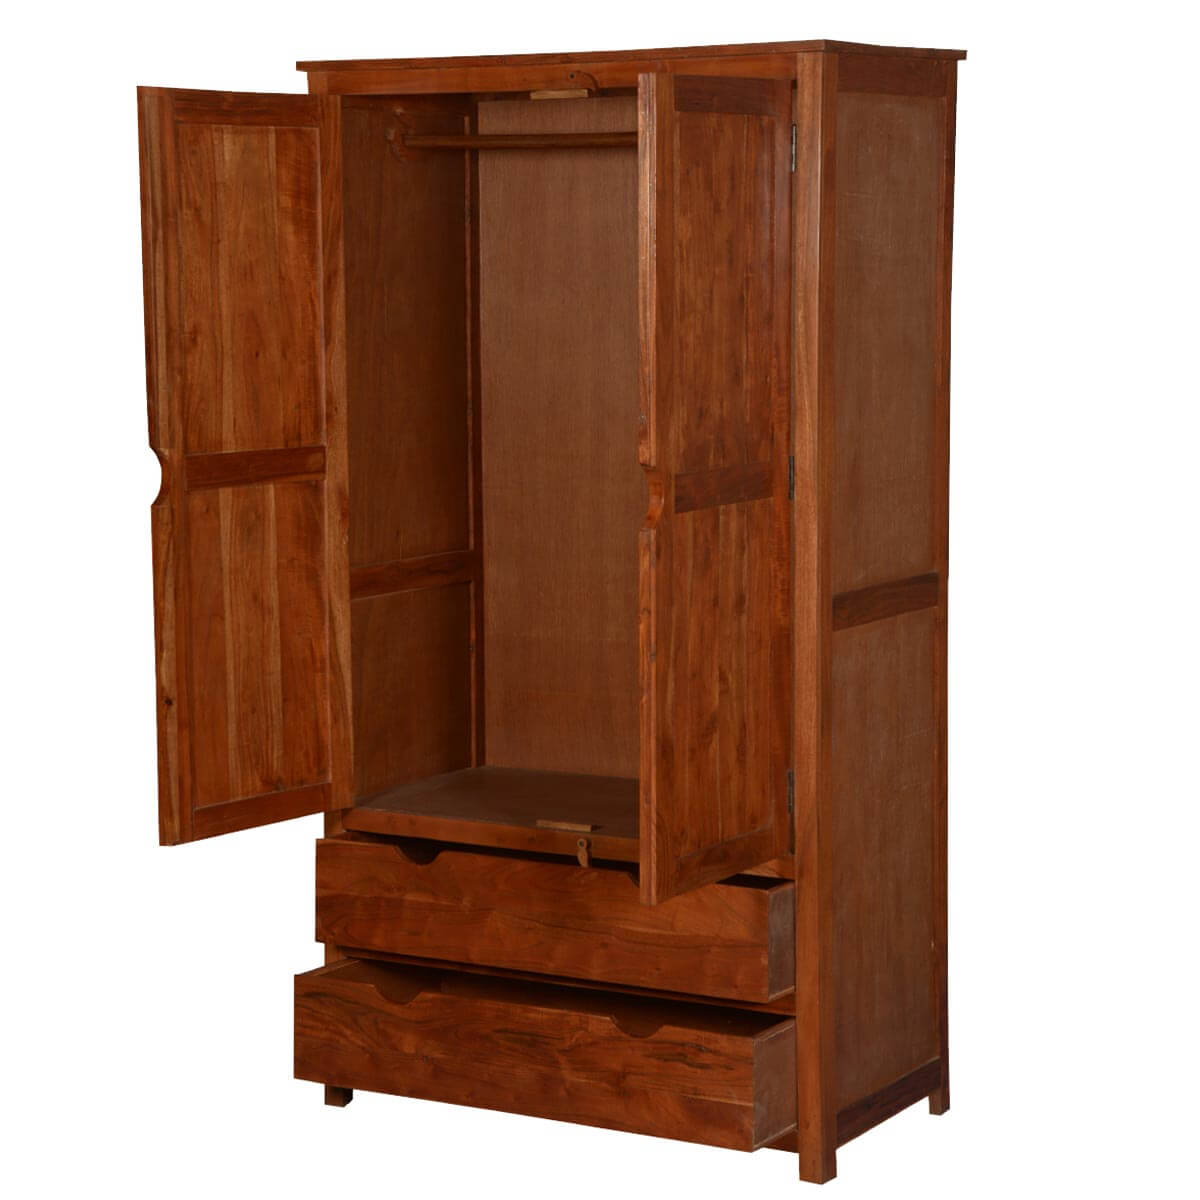 Santa fe contemporary acacia wood wardrobe armoire cabinet for Wood cabinets